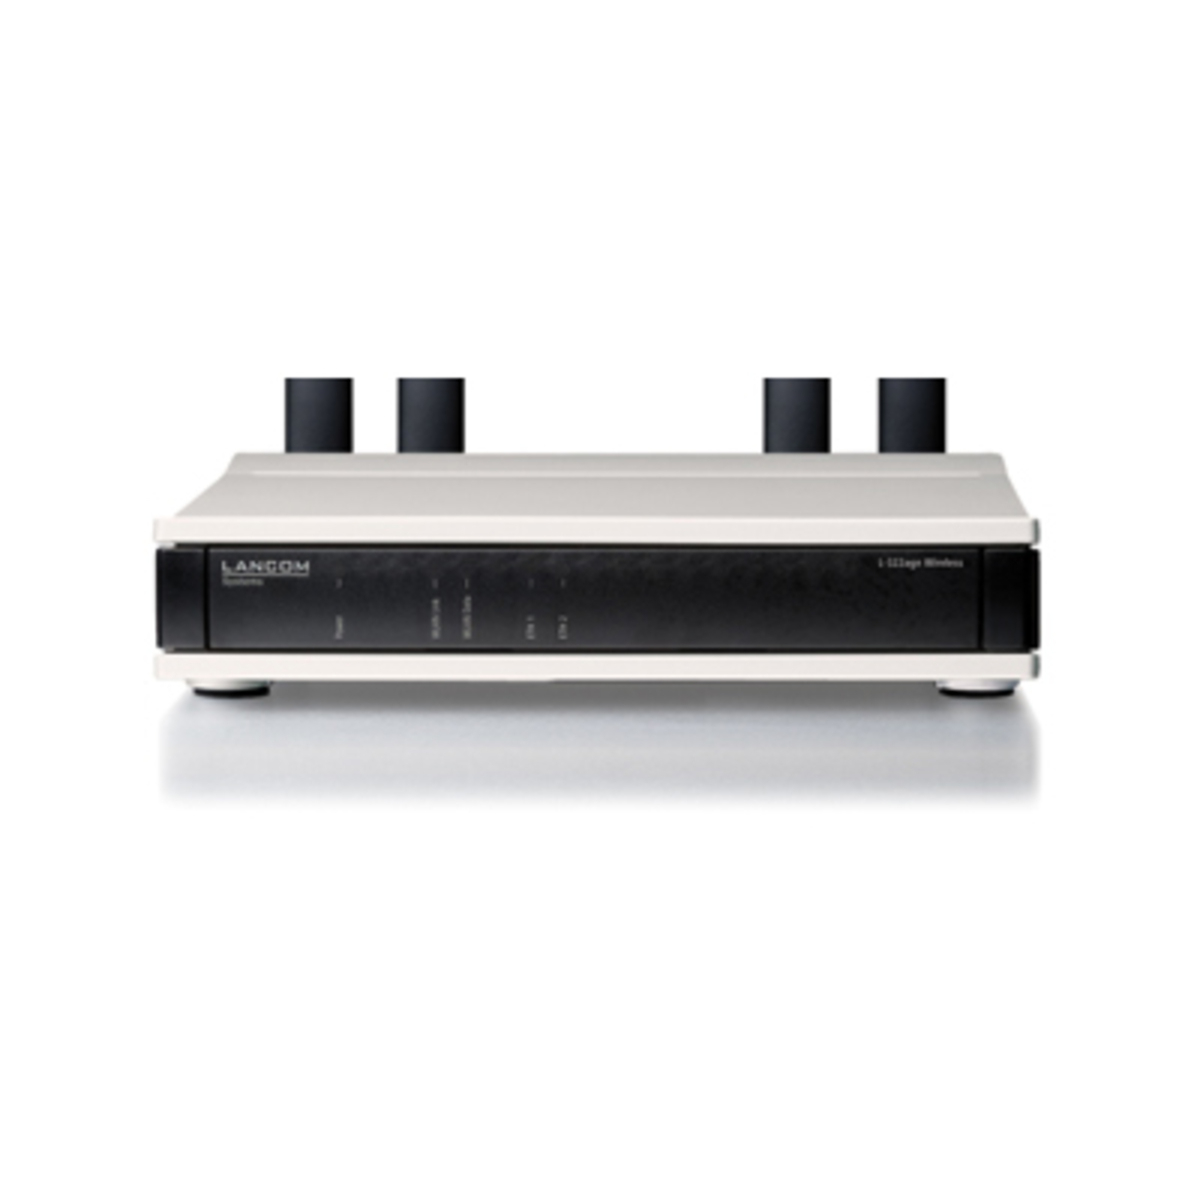 LANCOM L-322agn dual Wireless